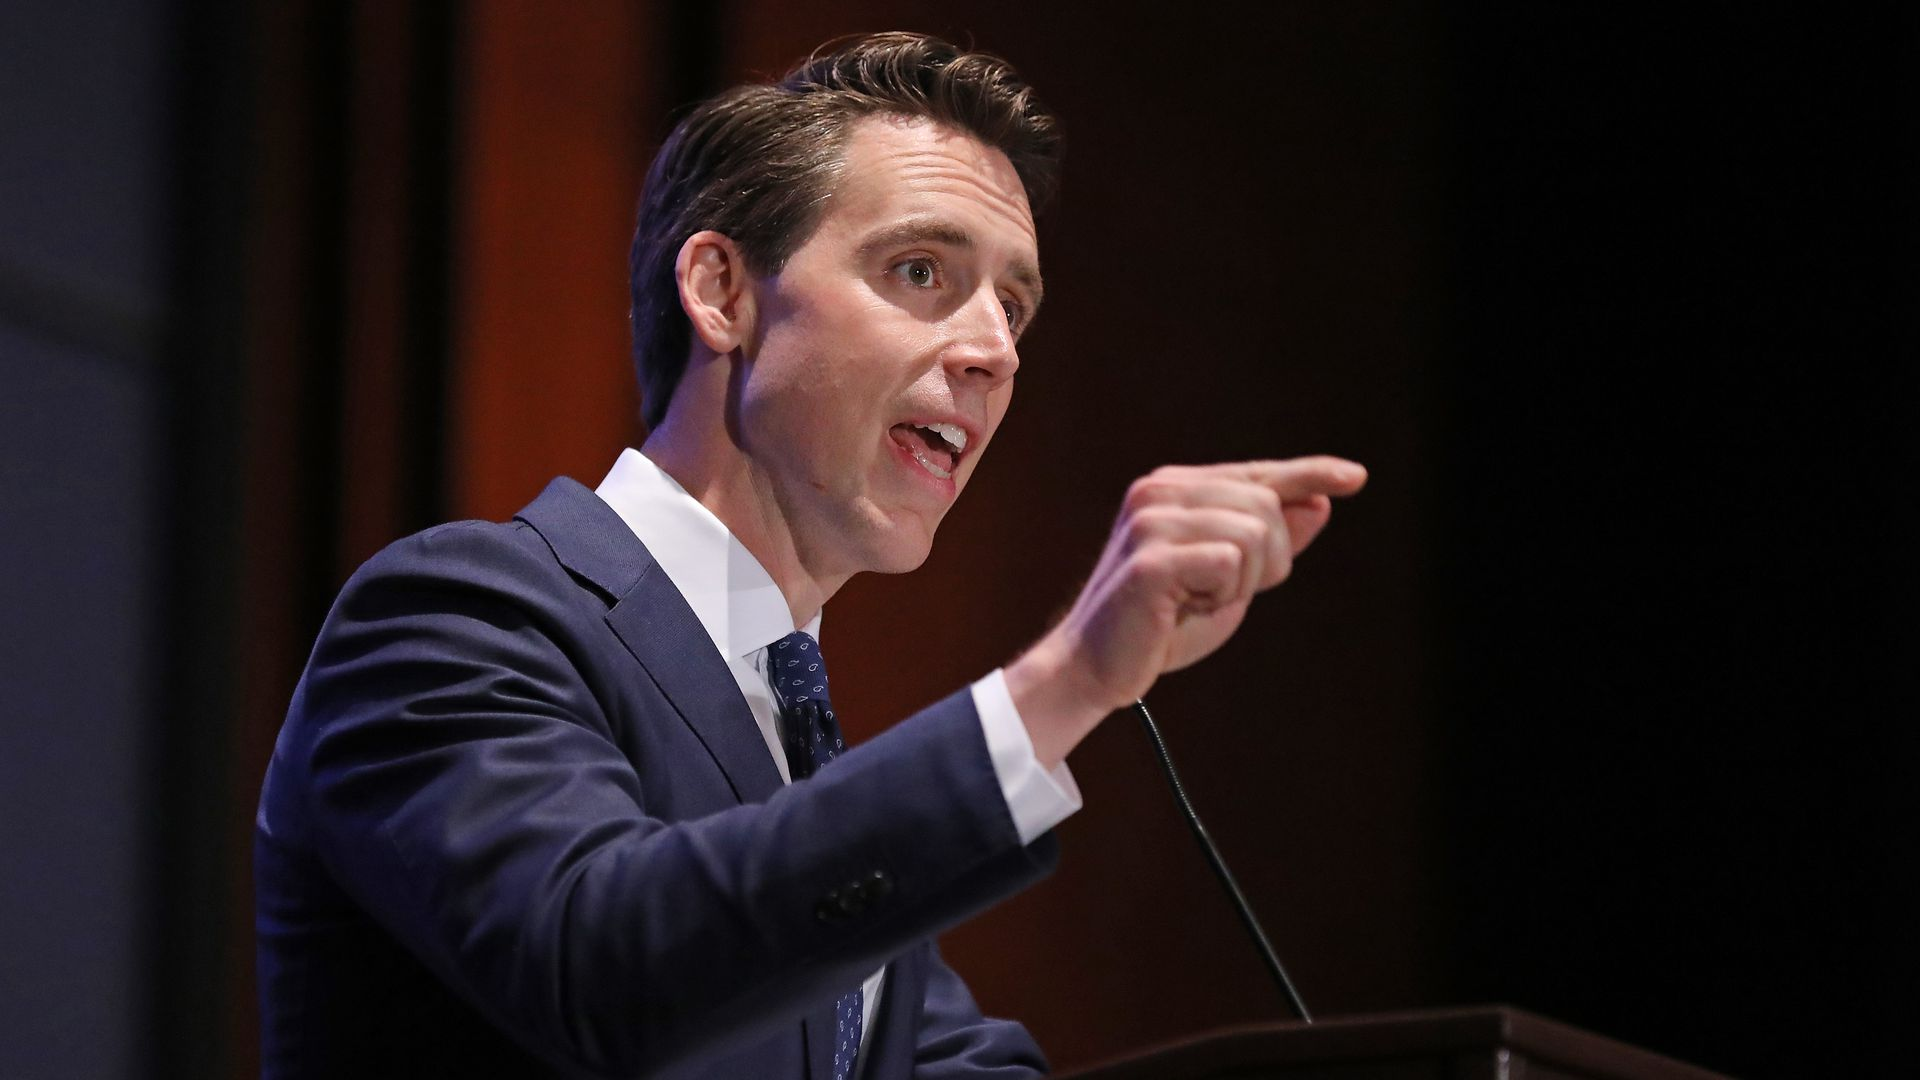 A photo of Sen. Josh Hawley standing and pointing at a microphone.